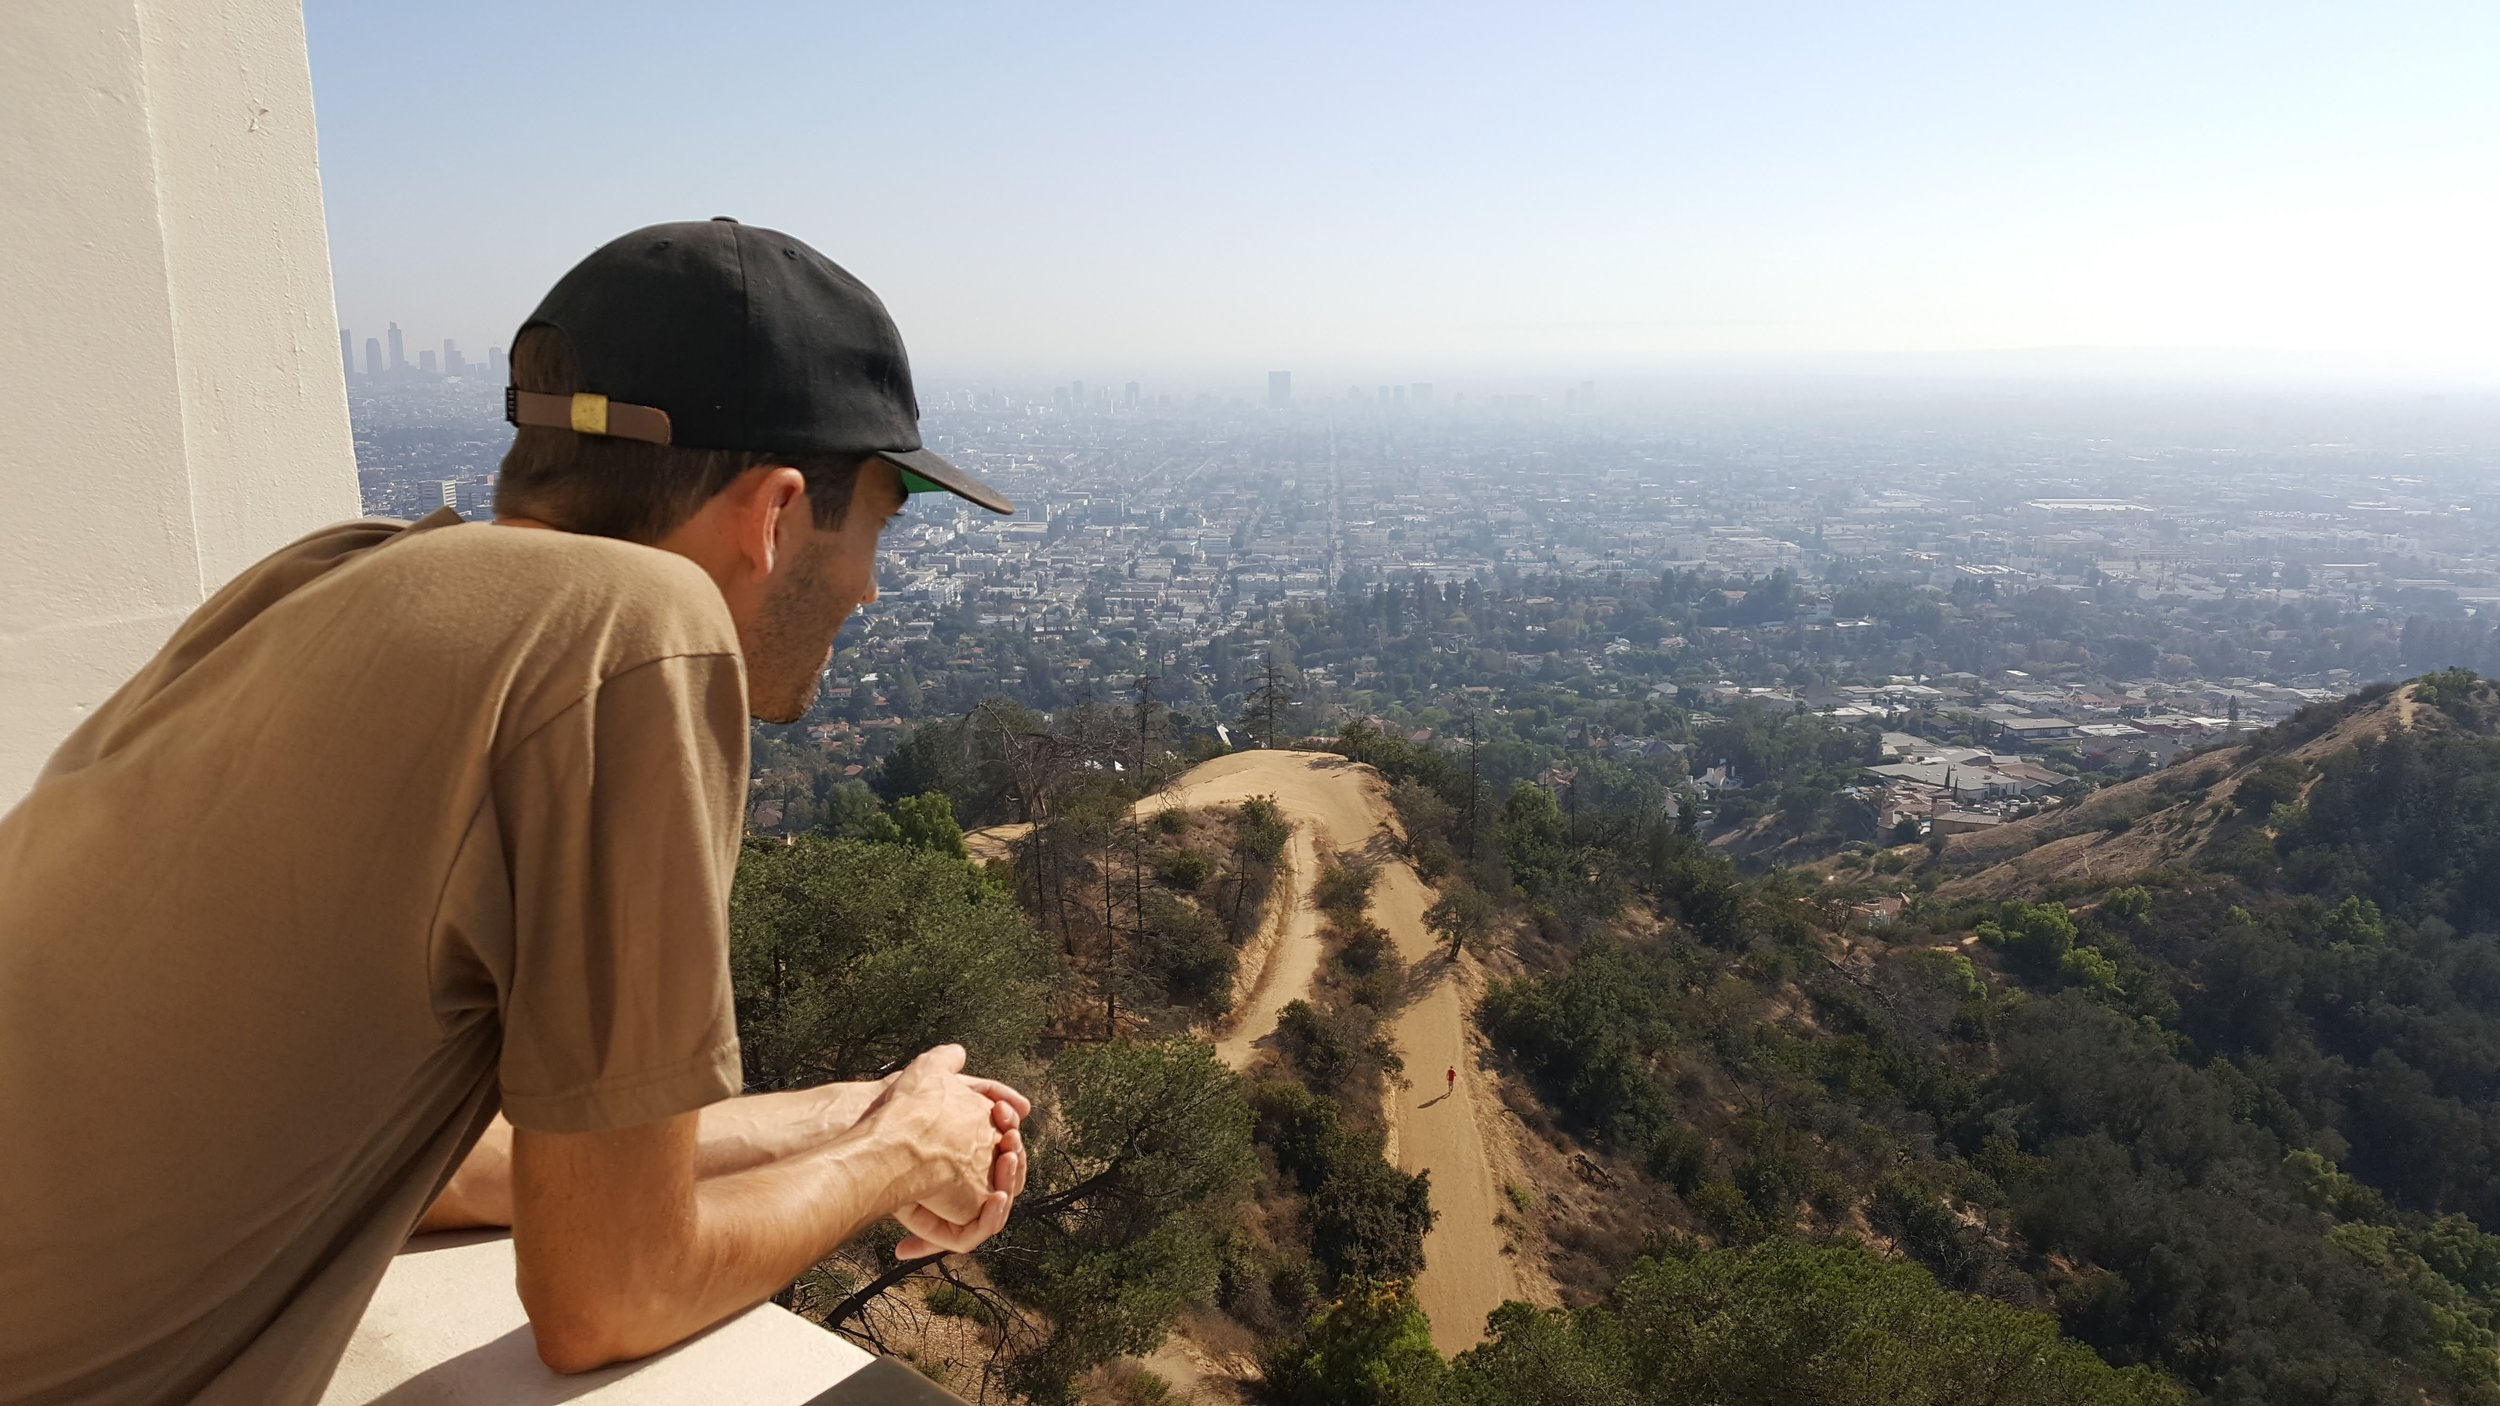 Griffith_Observatory1.jpg